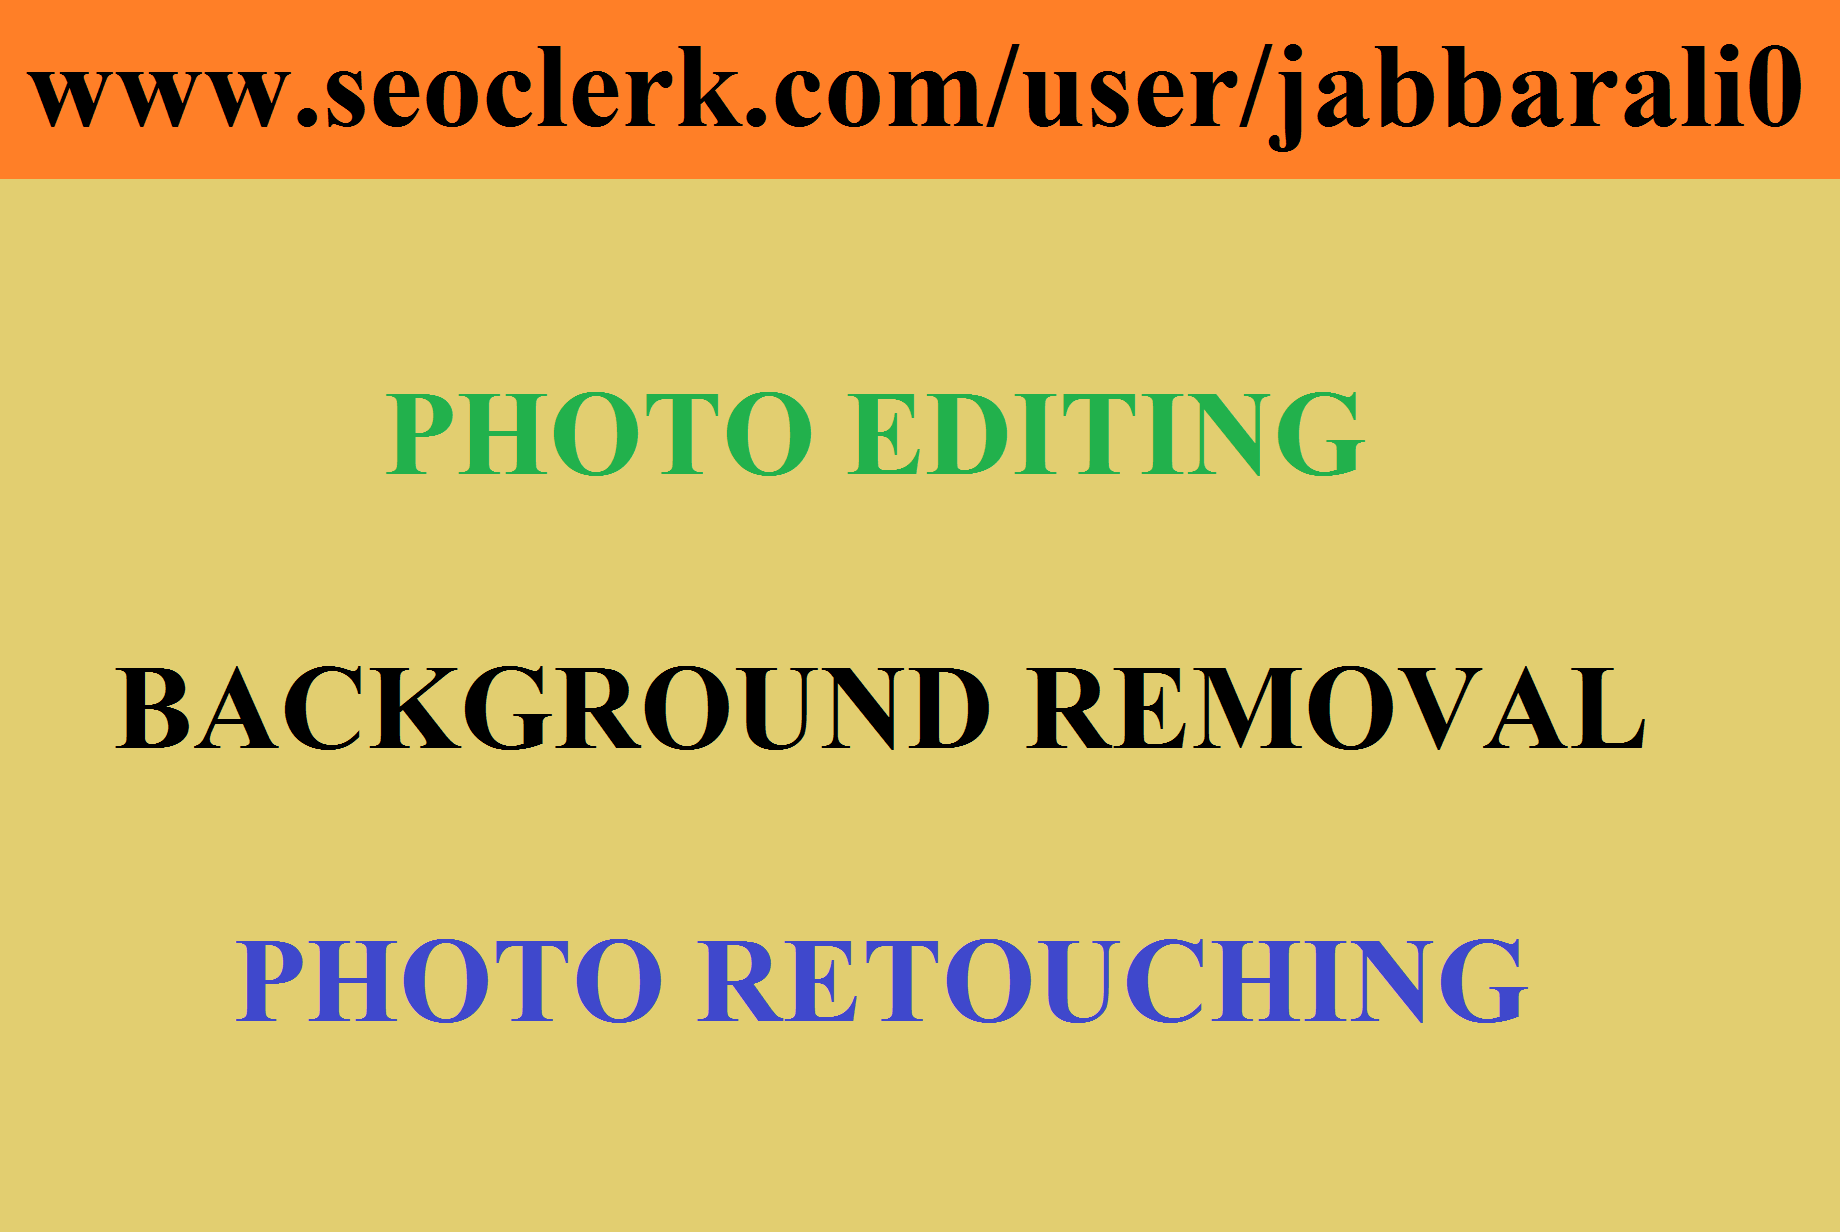 Any Photo Editing-Background Removal-Crop-Resize Professionally